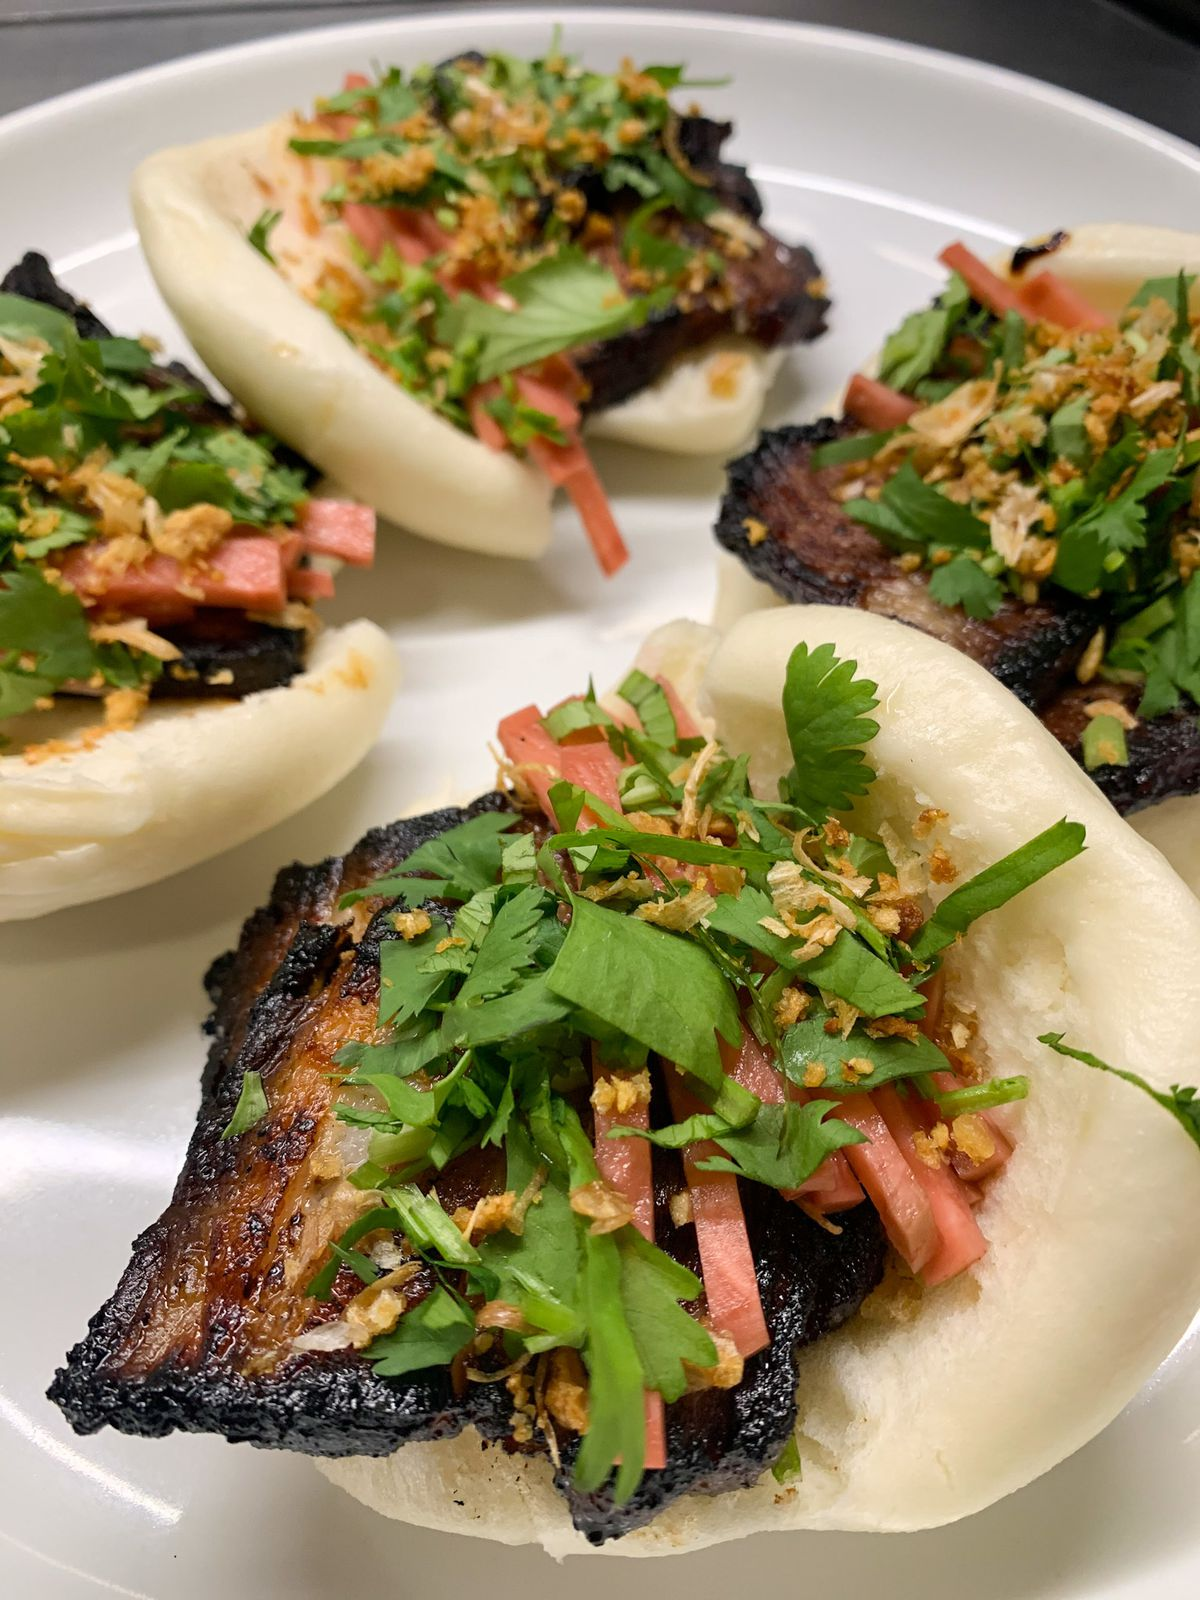 Four open-faced bao buns stuffed with pork and vegetables and placed on a white plate